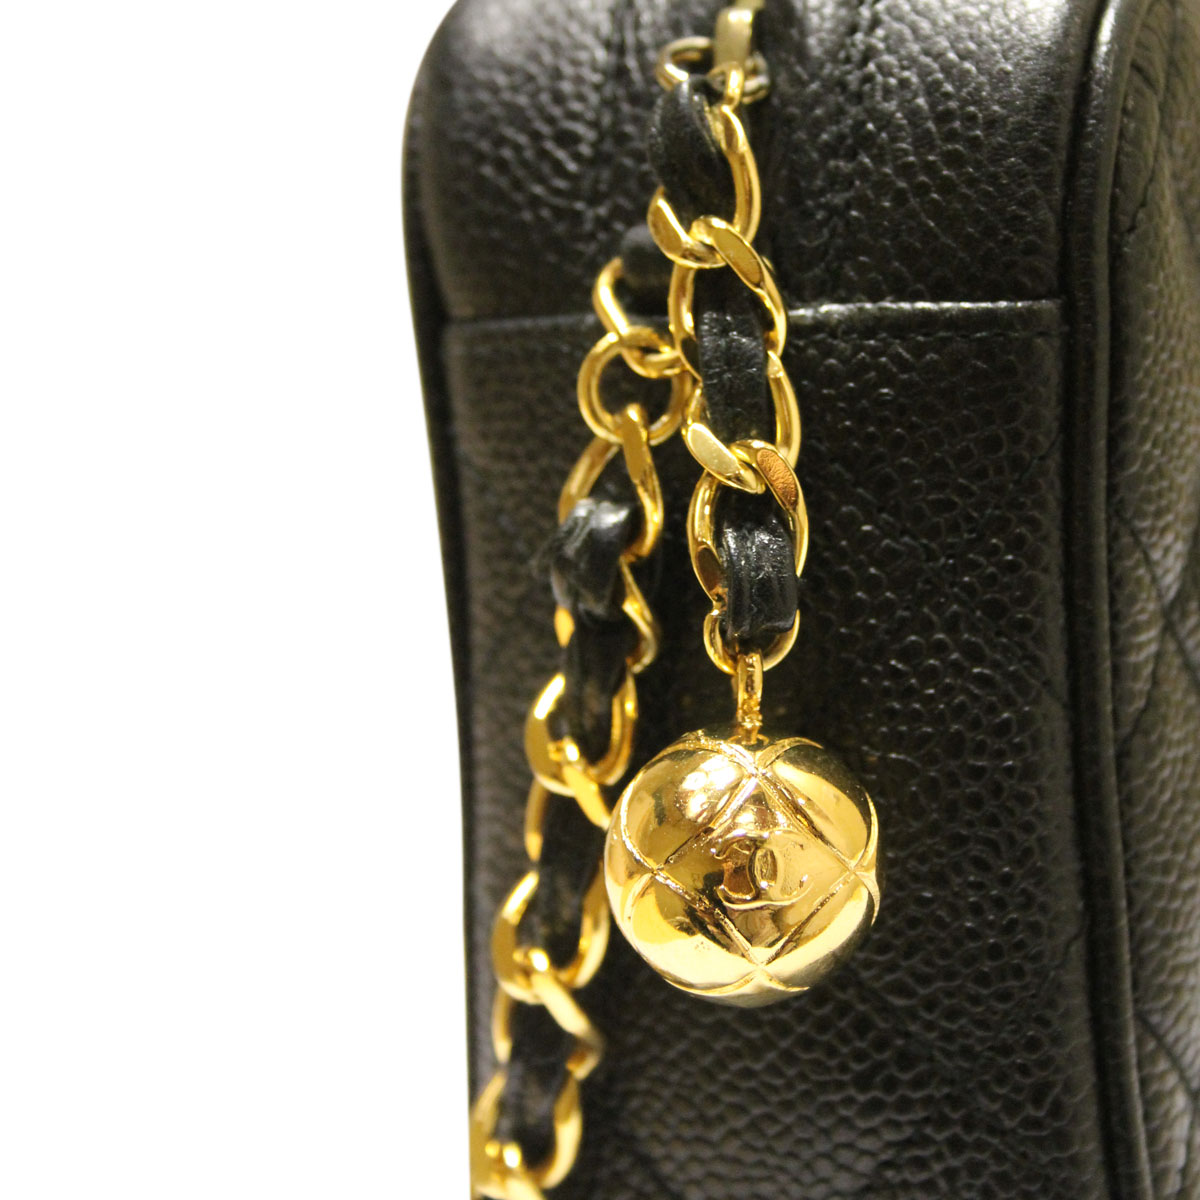 Find great deals on eBay for black gold hardware purse. Shop with confidence.